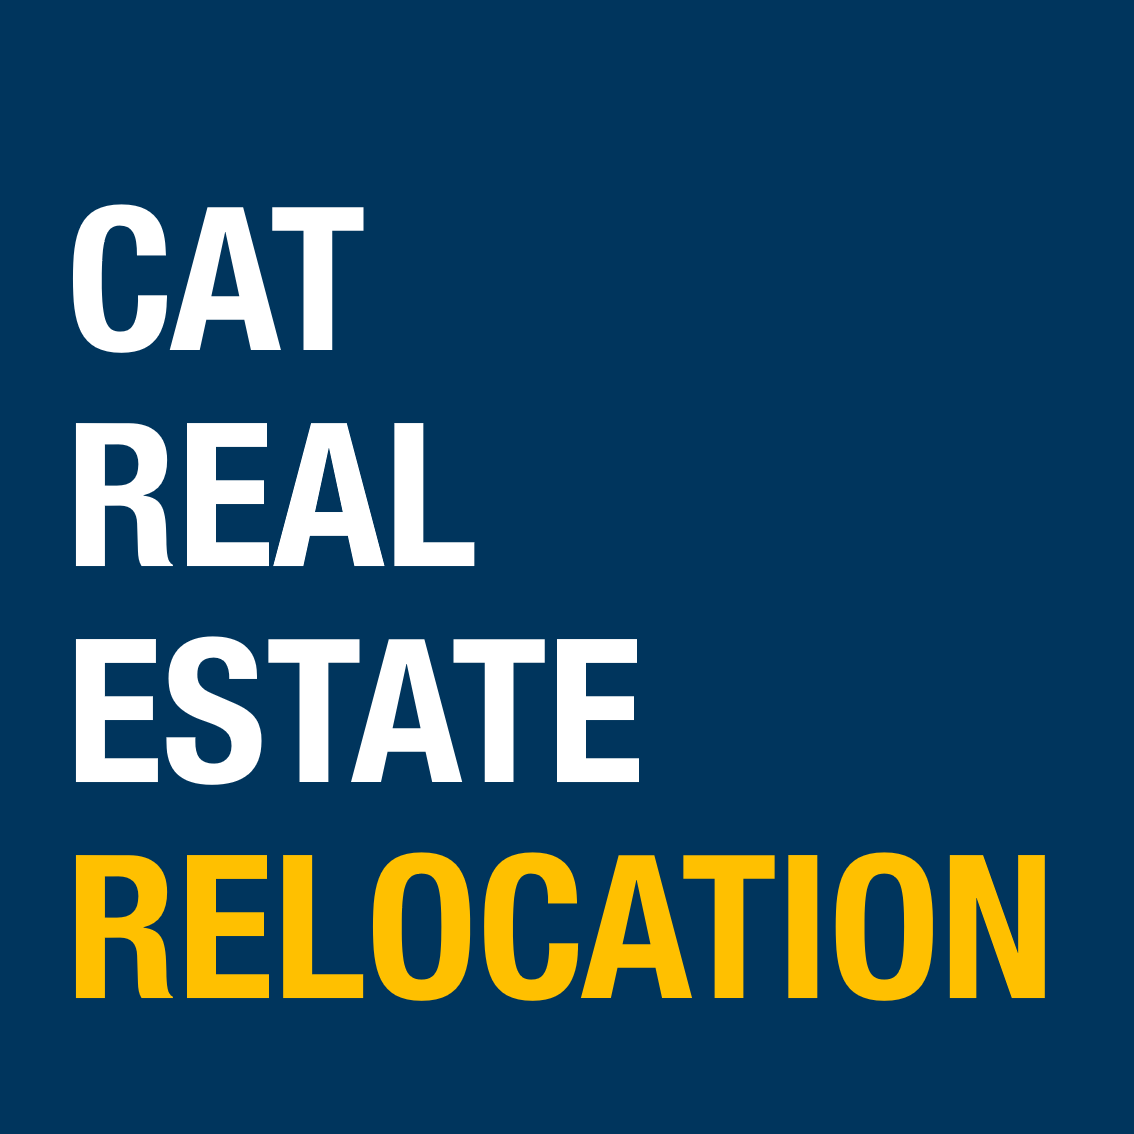 CAT REAL ESTATE RELOCATION